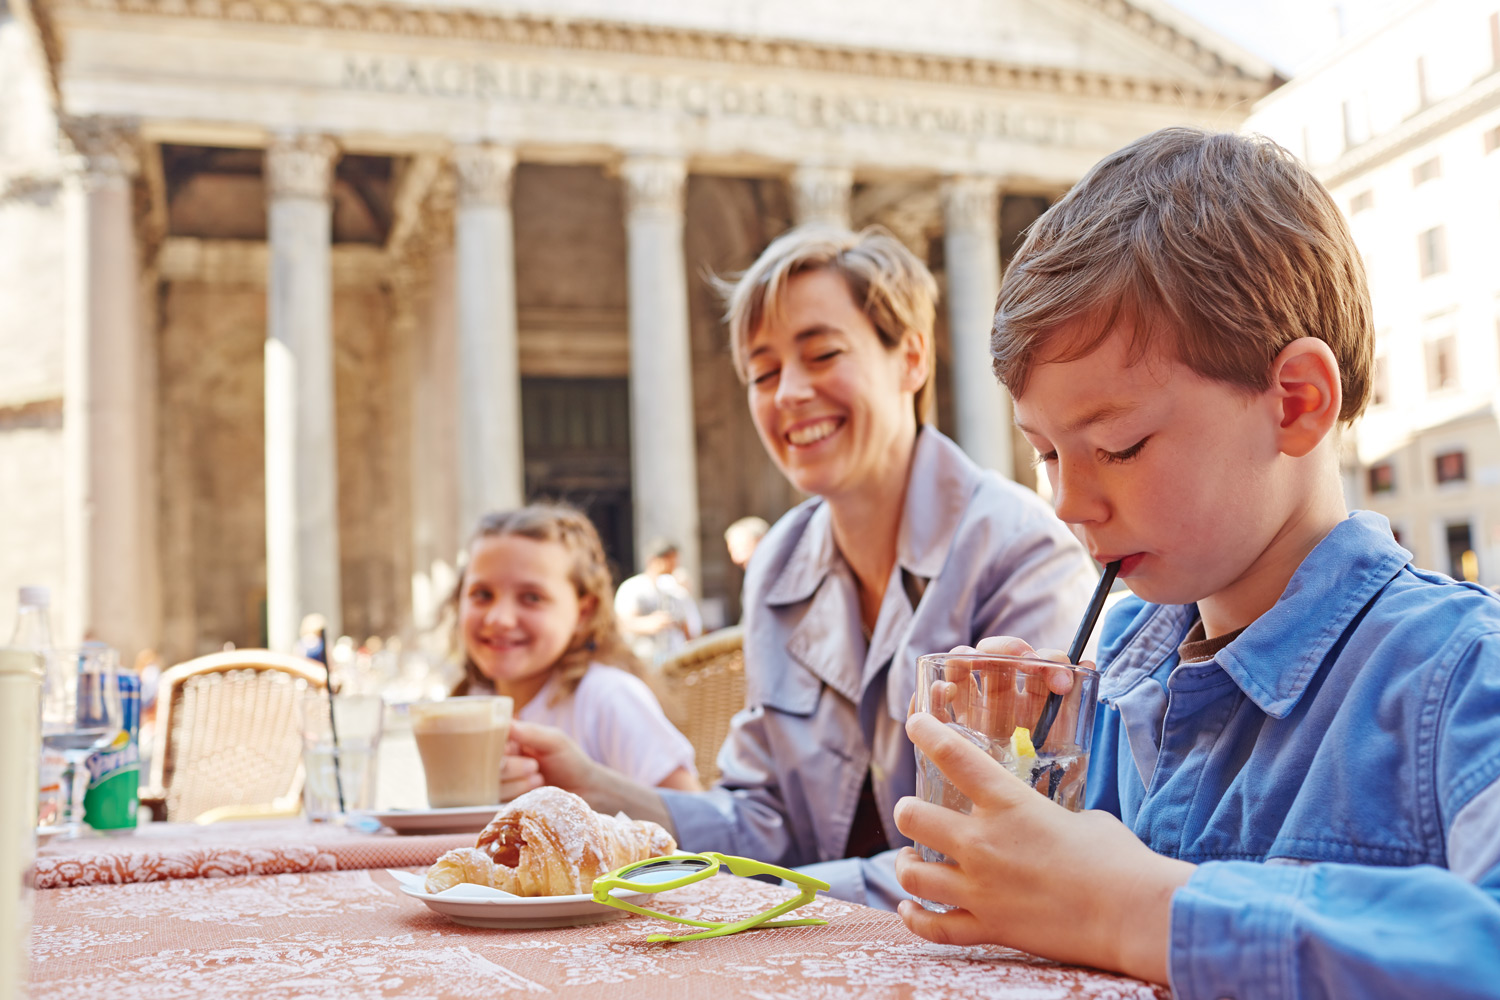 Trafalgar Tours Offers Family Focused Itineraries Around The World Including To Italy With Stops In Rome